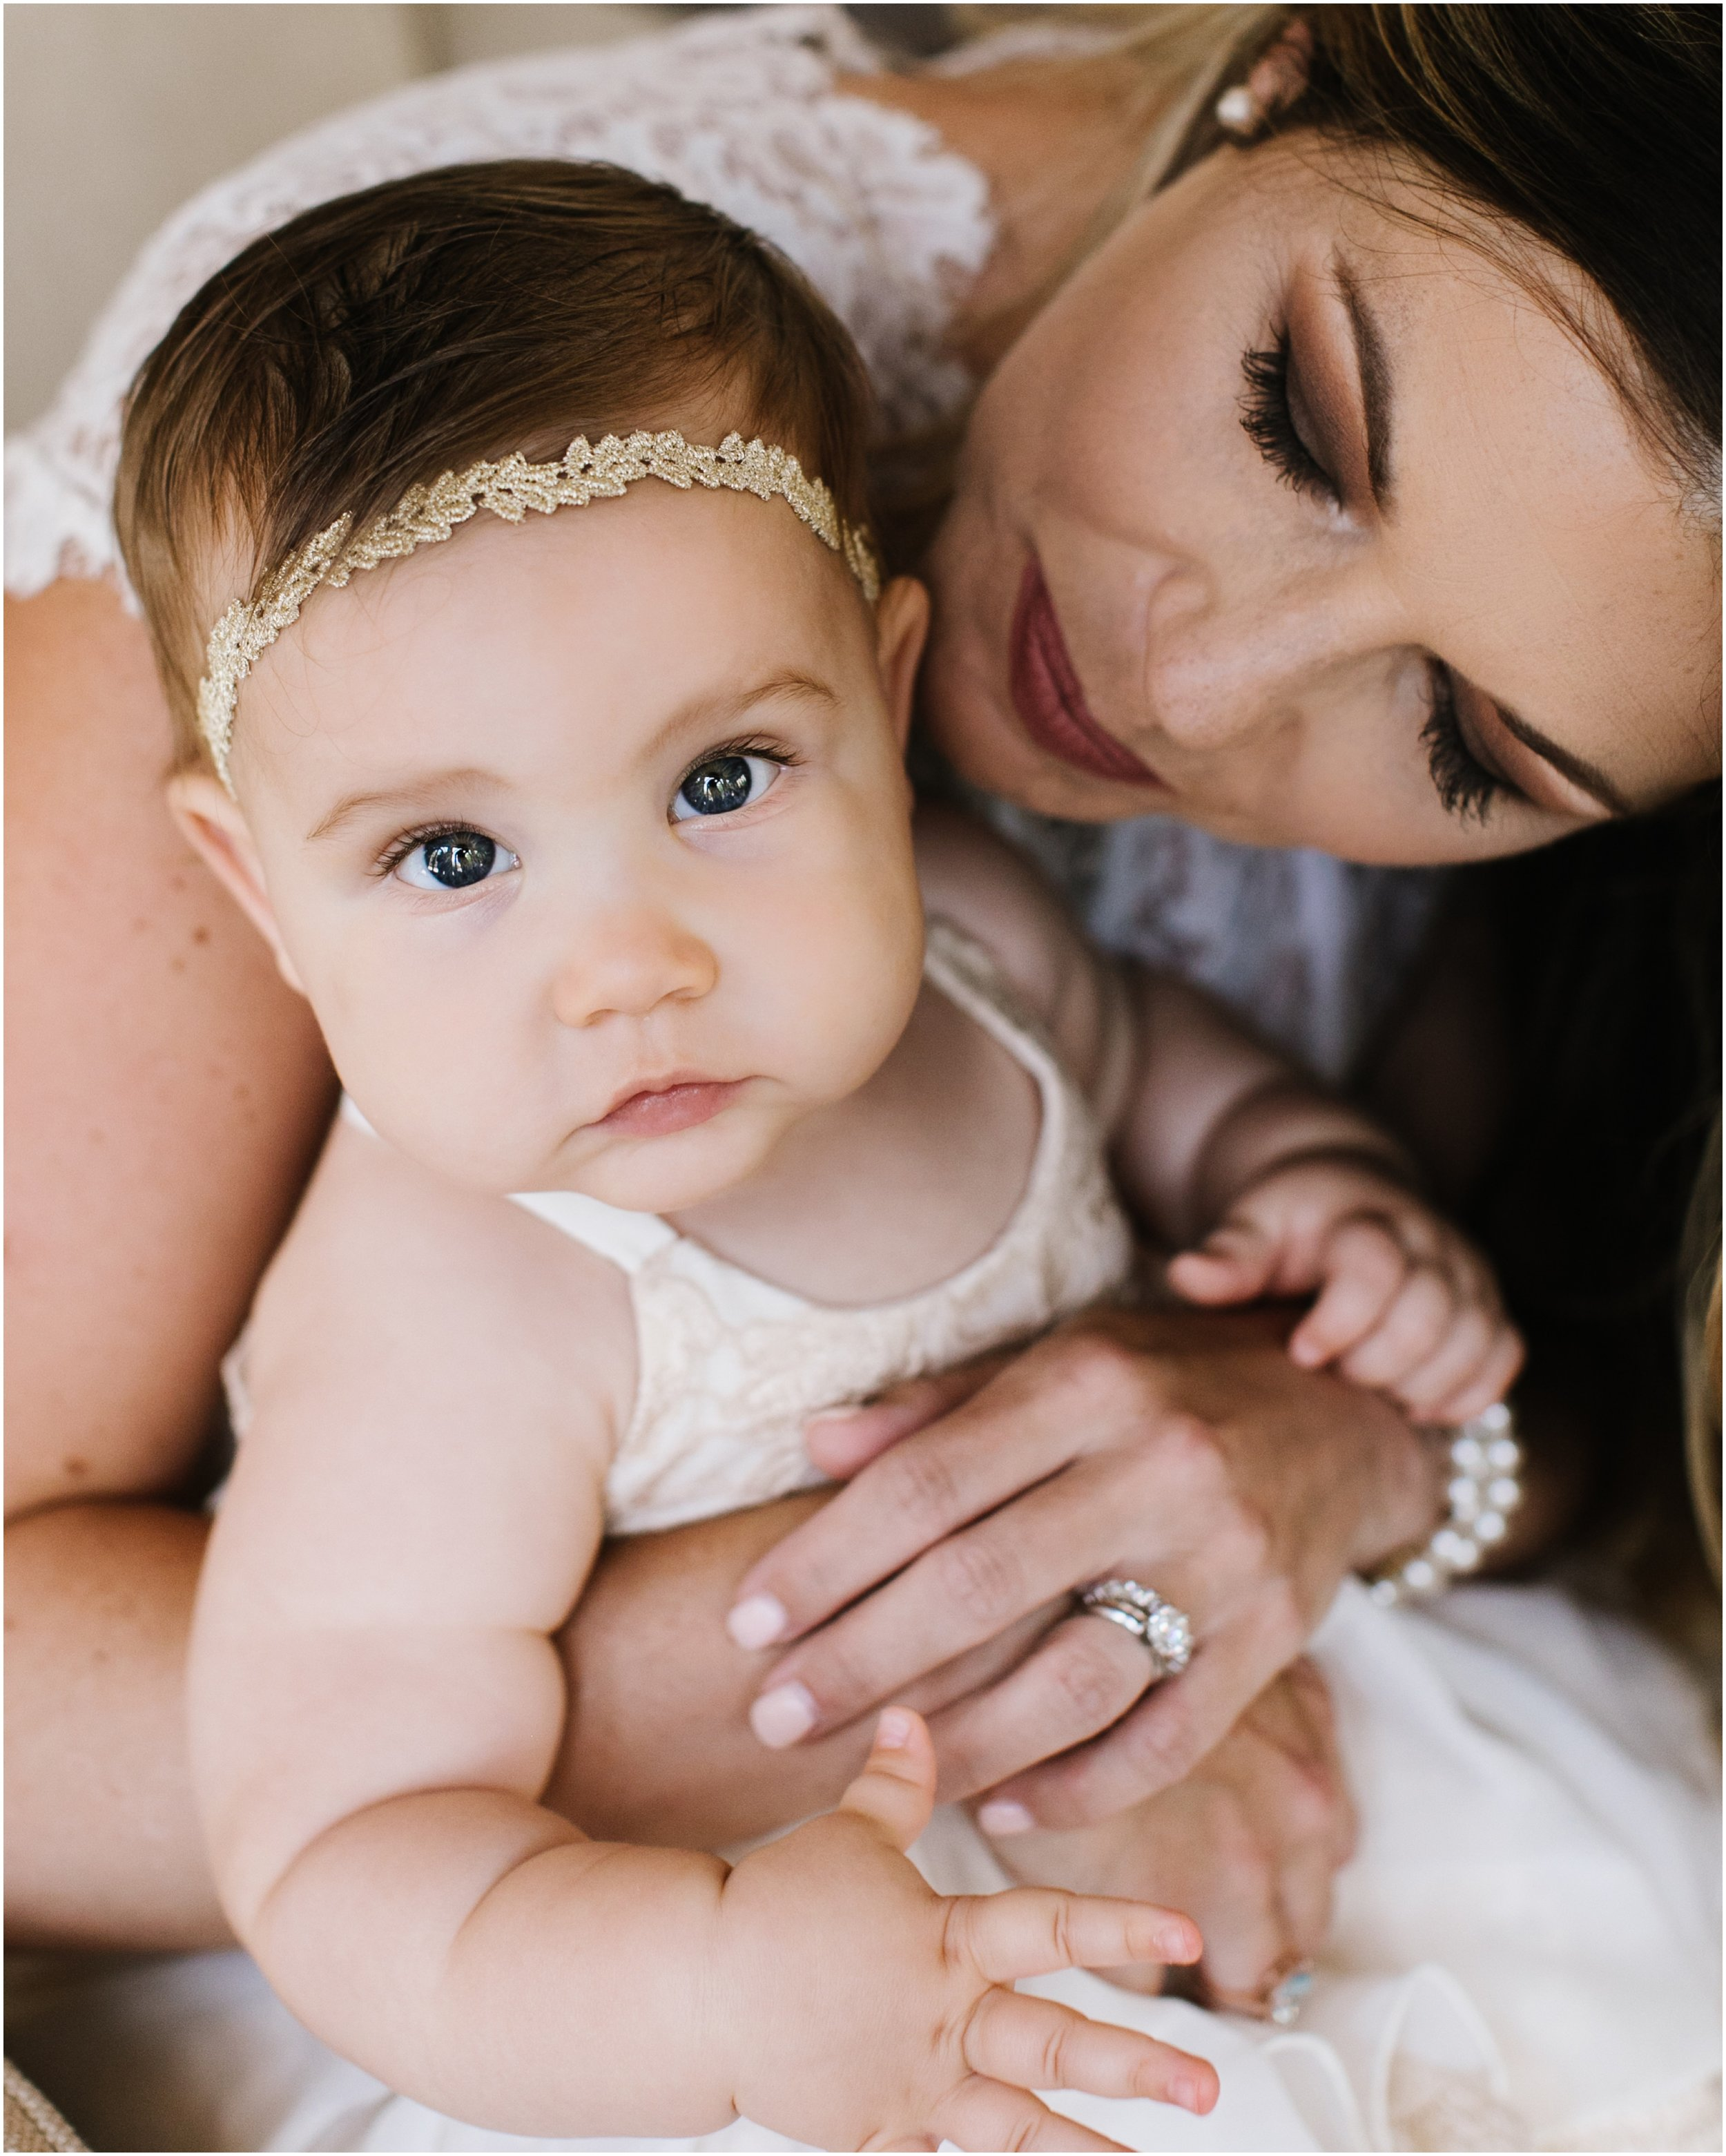 Mire-Blessing-Baptism-Family-2018-June-8847_quaint-and-whim-lifestyle-photographer-louisiana-.jpg